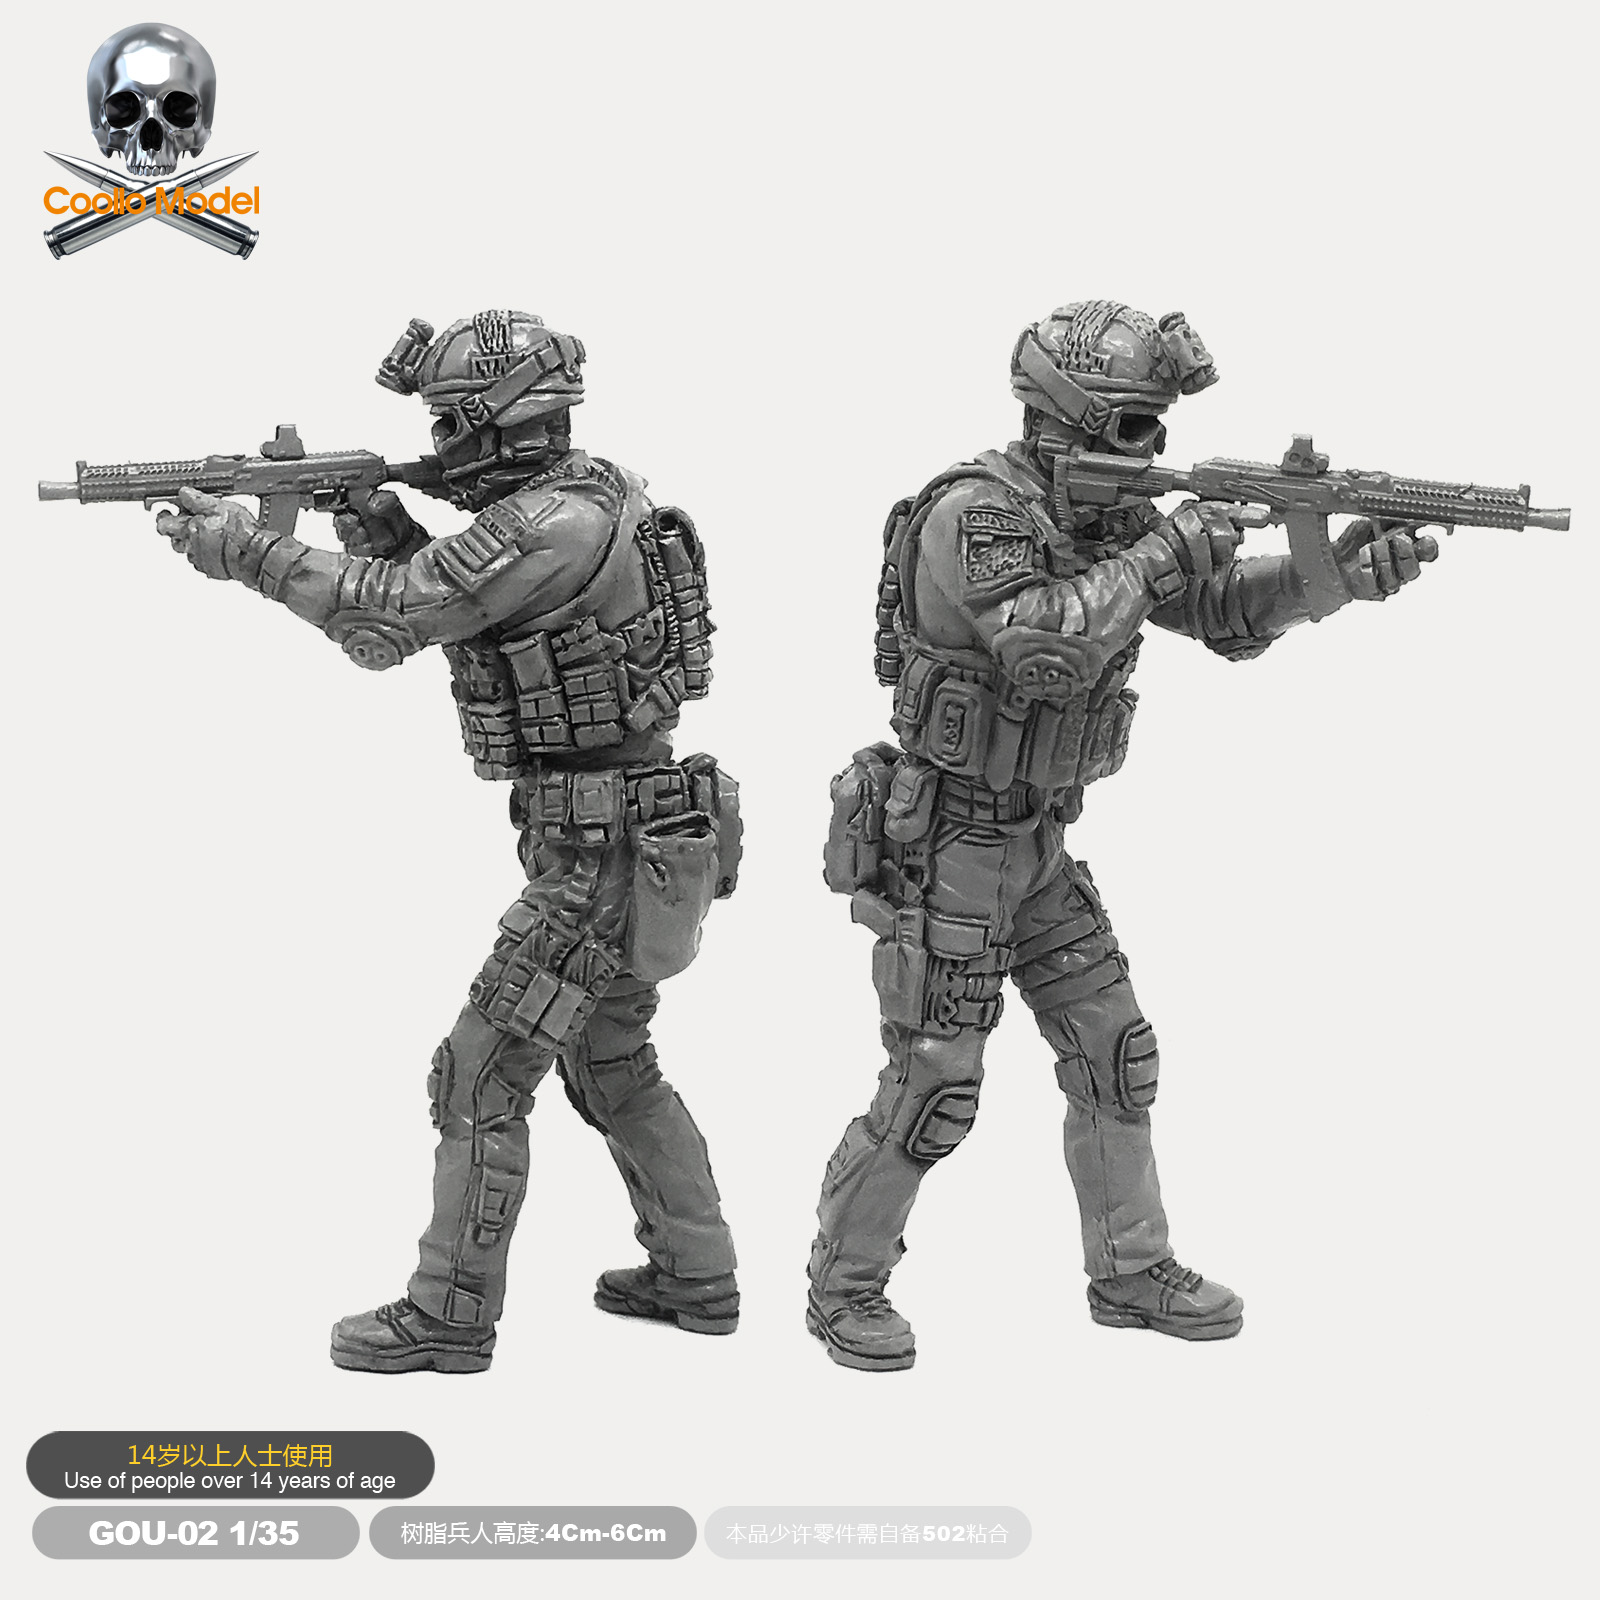 1/35 Resin Soldier  Of Russian Special Forces Resin Figure Model Gou-02